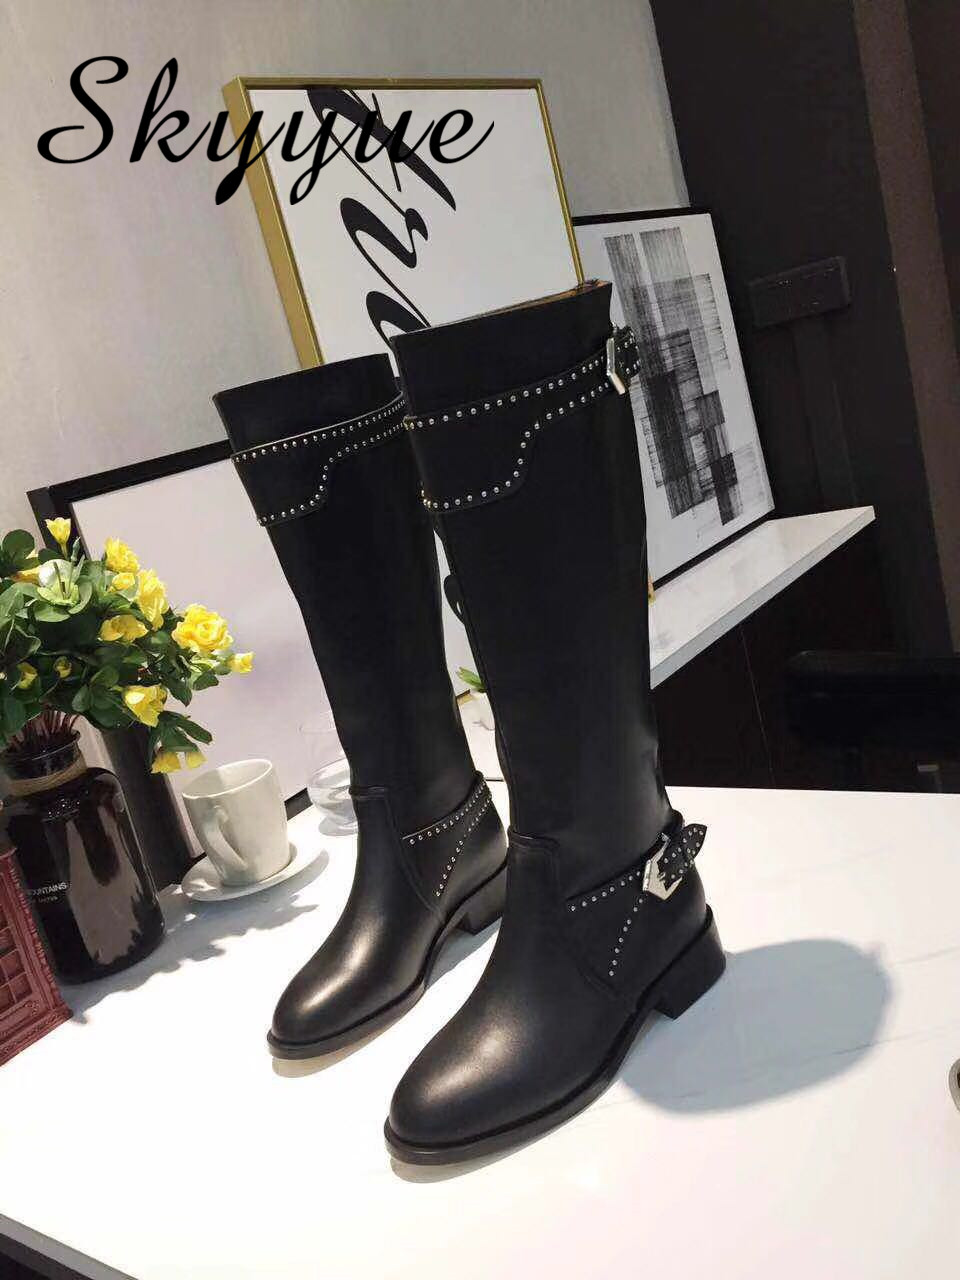 SKYYUE New Genuine Leather Metal Dot Studded Women Boots Round Toe Knee HIgh Women Autumn Winter Boots Low Heel Shoes Women michael kors new navy blue women s size xs studded hi low crewneck sweater $130